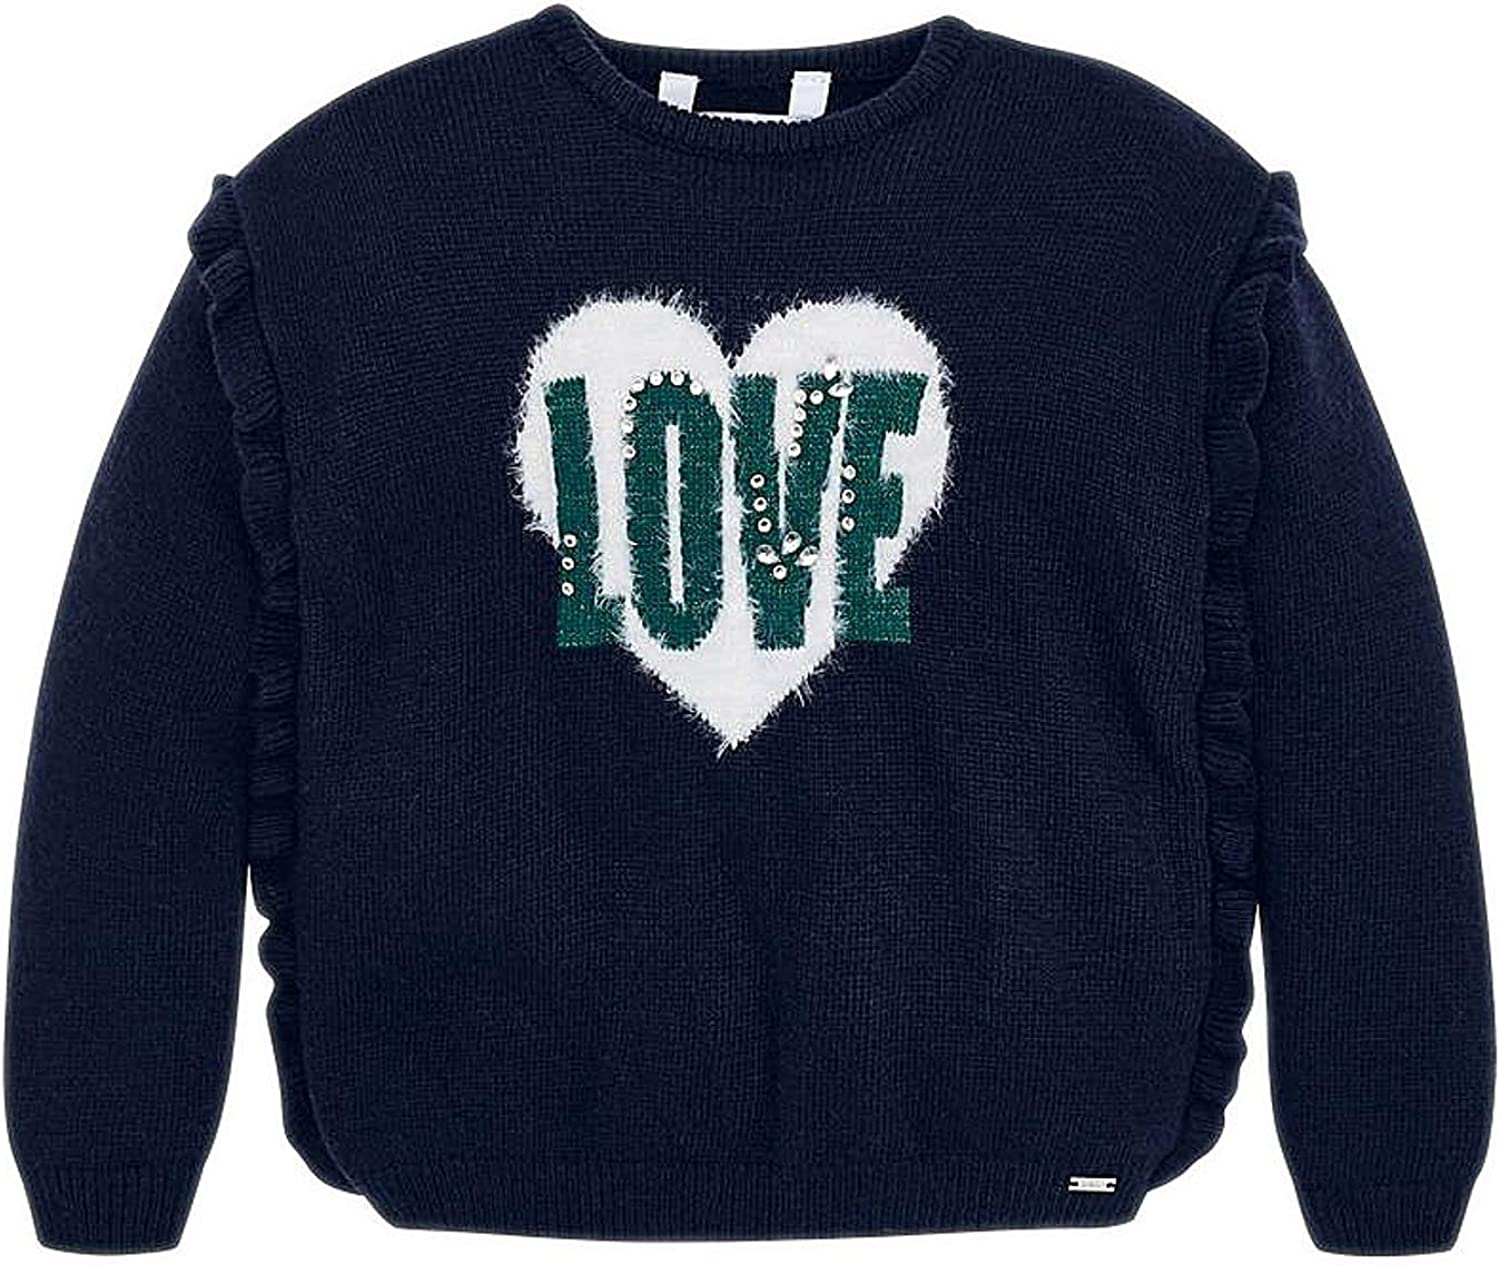 Mayoral - Sweater for Girls - 4304, Navy